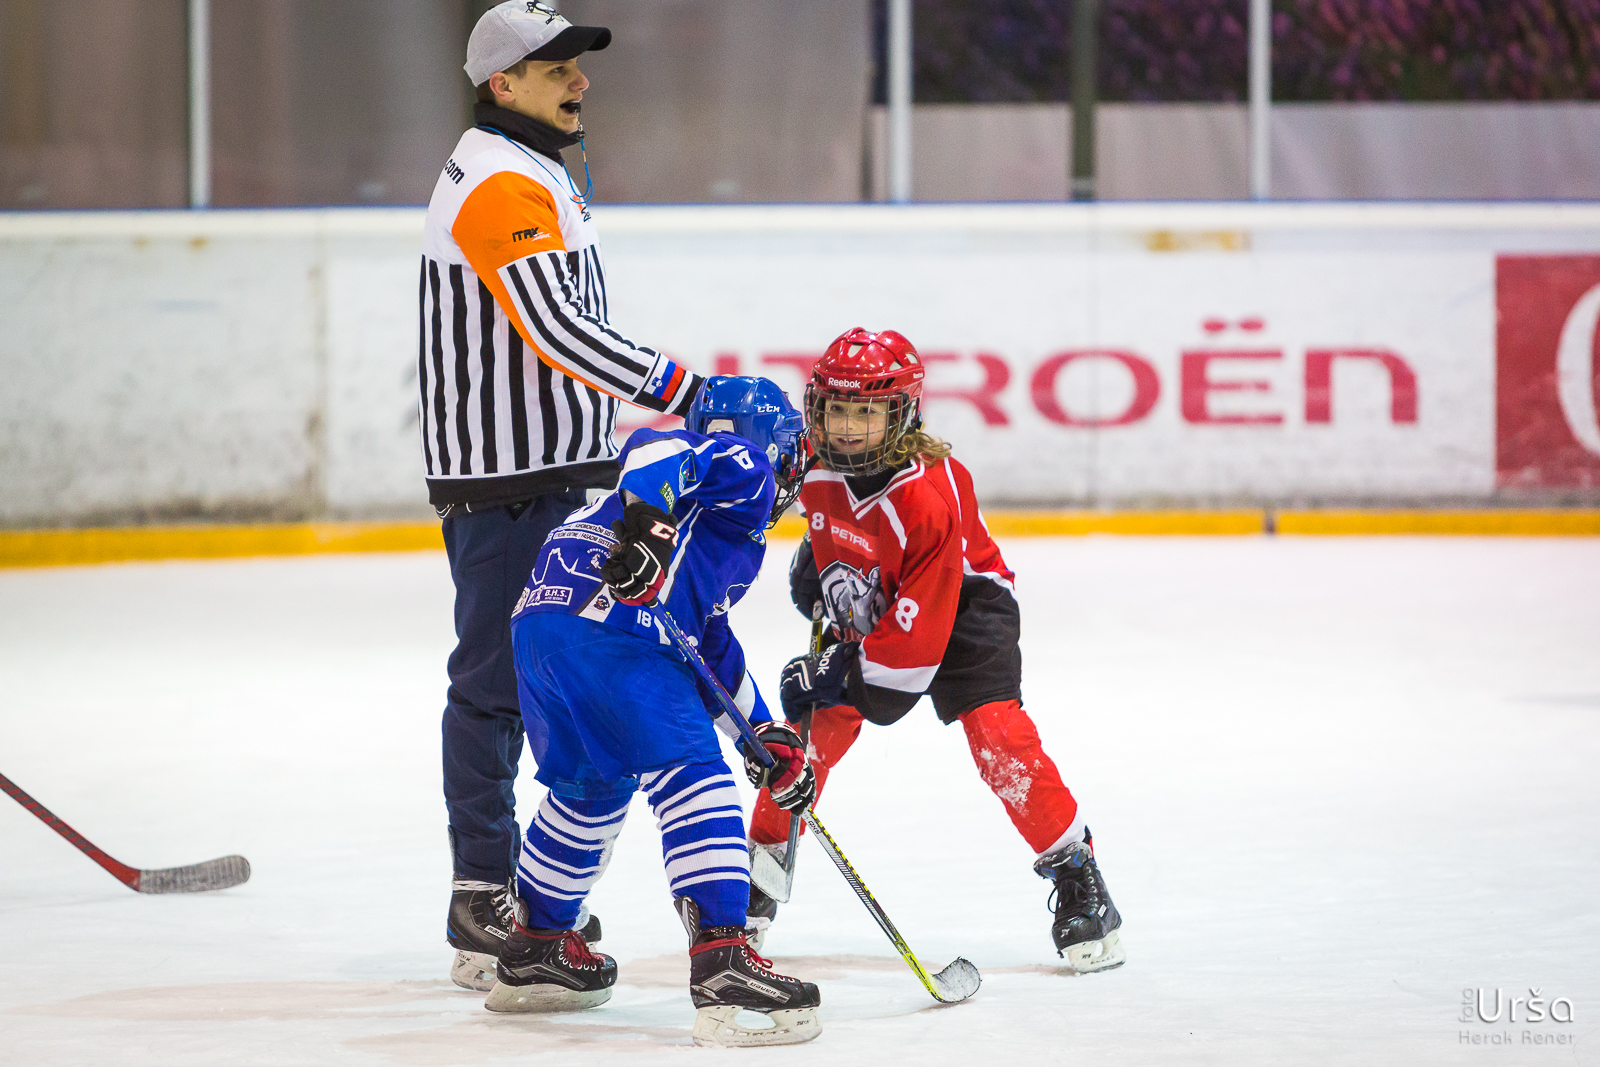 Turnir v Mariboru U8 in U10